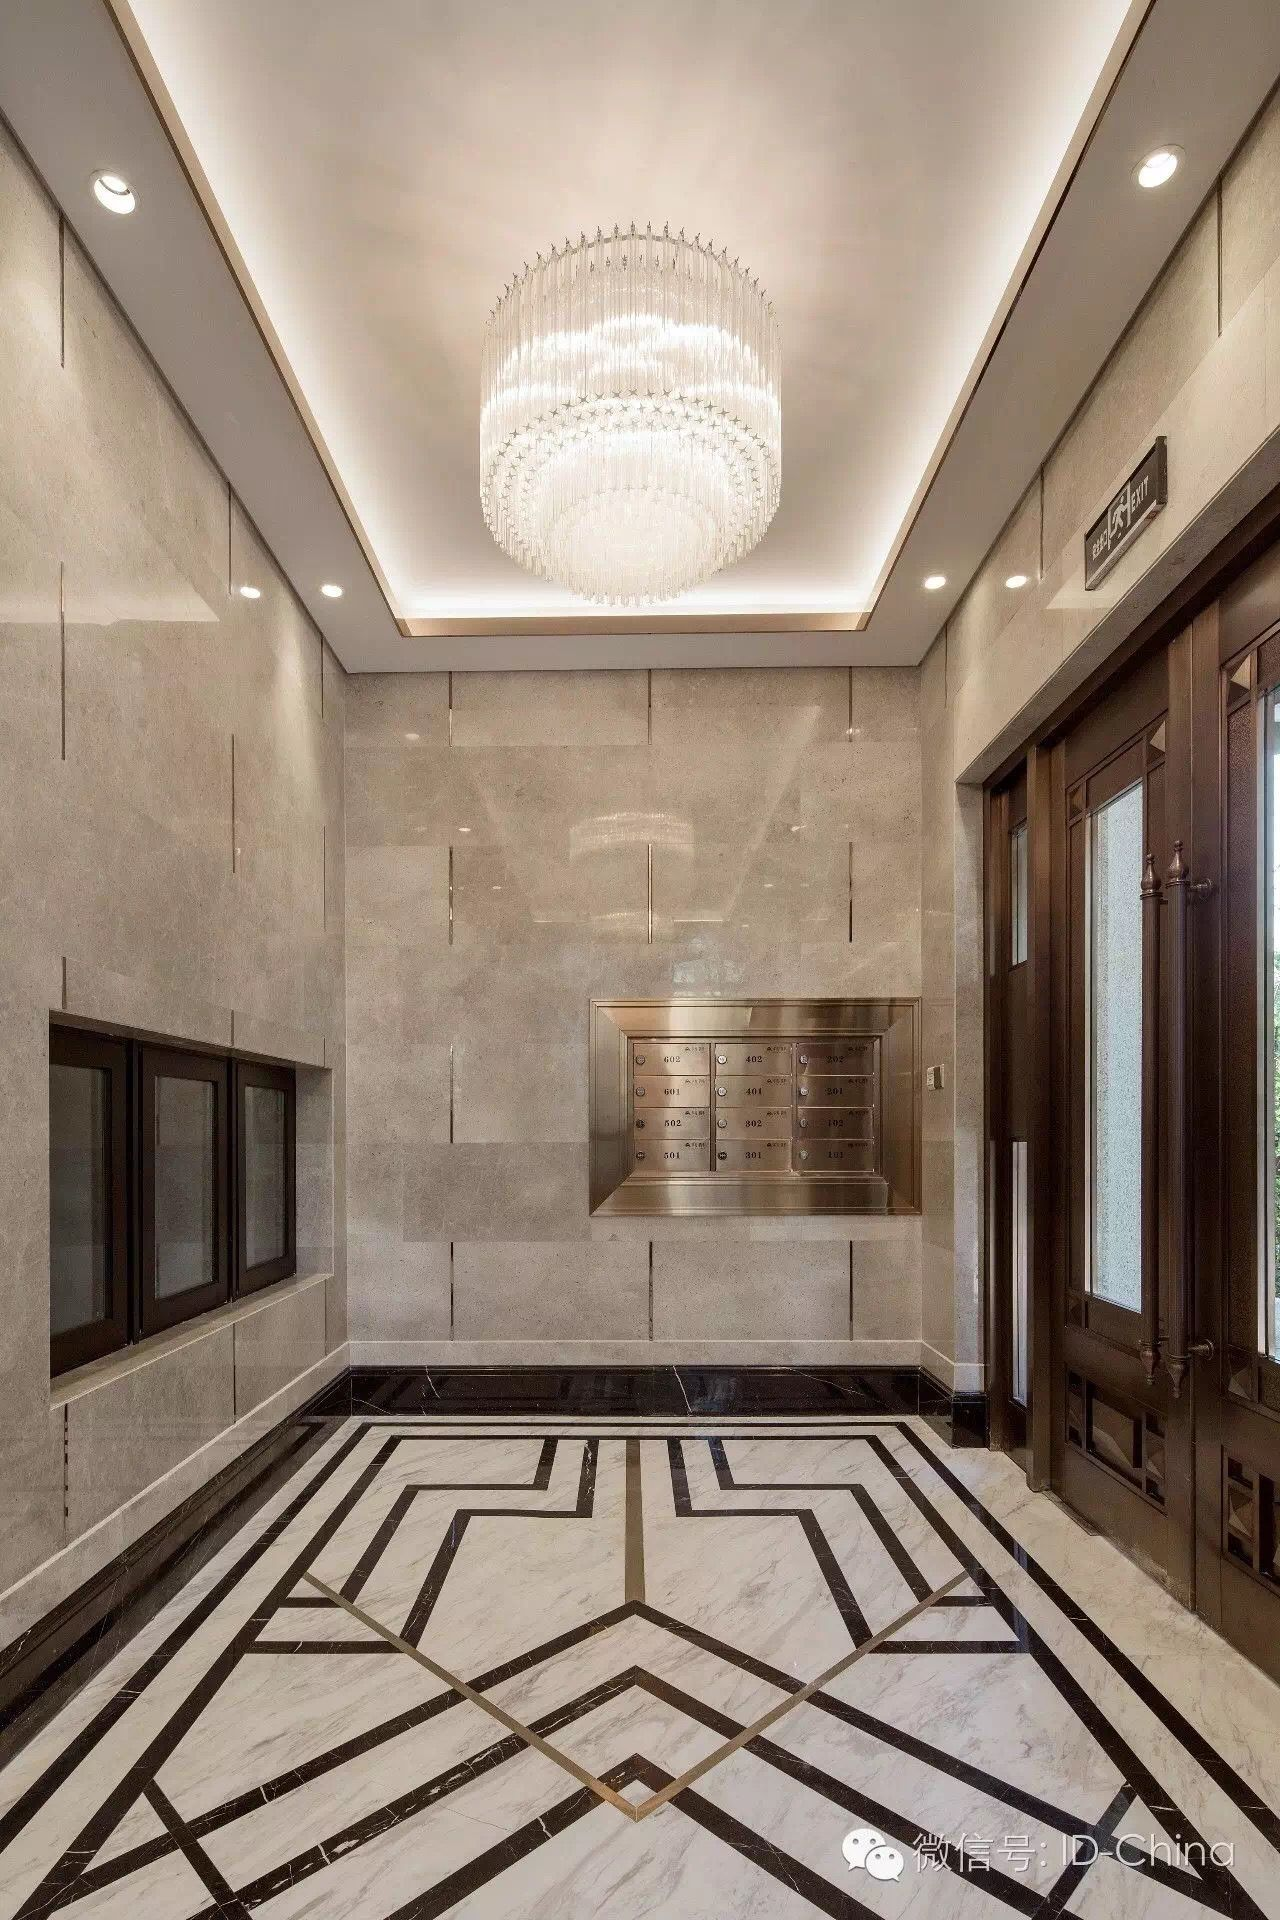 Exquisite Retro Lift Lobby Tile Pinterest Lobbies